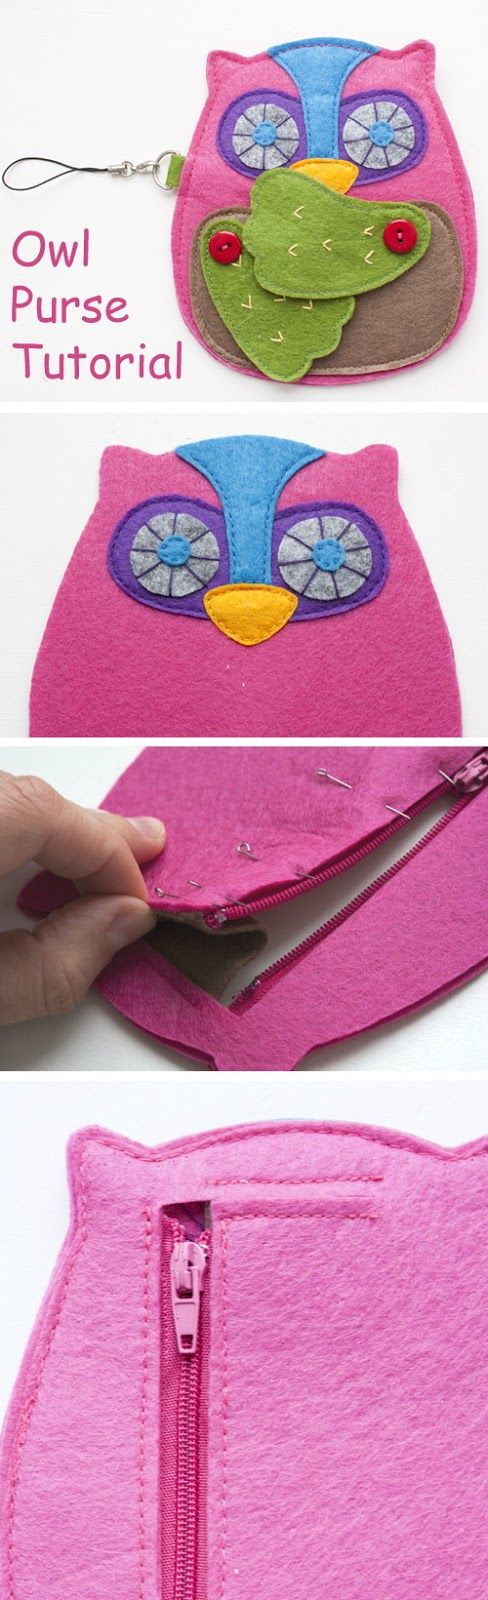 Cute Handmade Owl Zipper Wallet Coin Purse Pattern. DIY Step-by-Step Tutorial Instruction.  http://www.handmadiya.com/2015/10/felt-owl-purse-tutorial.html